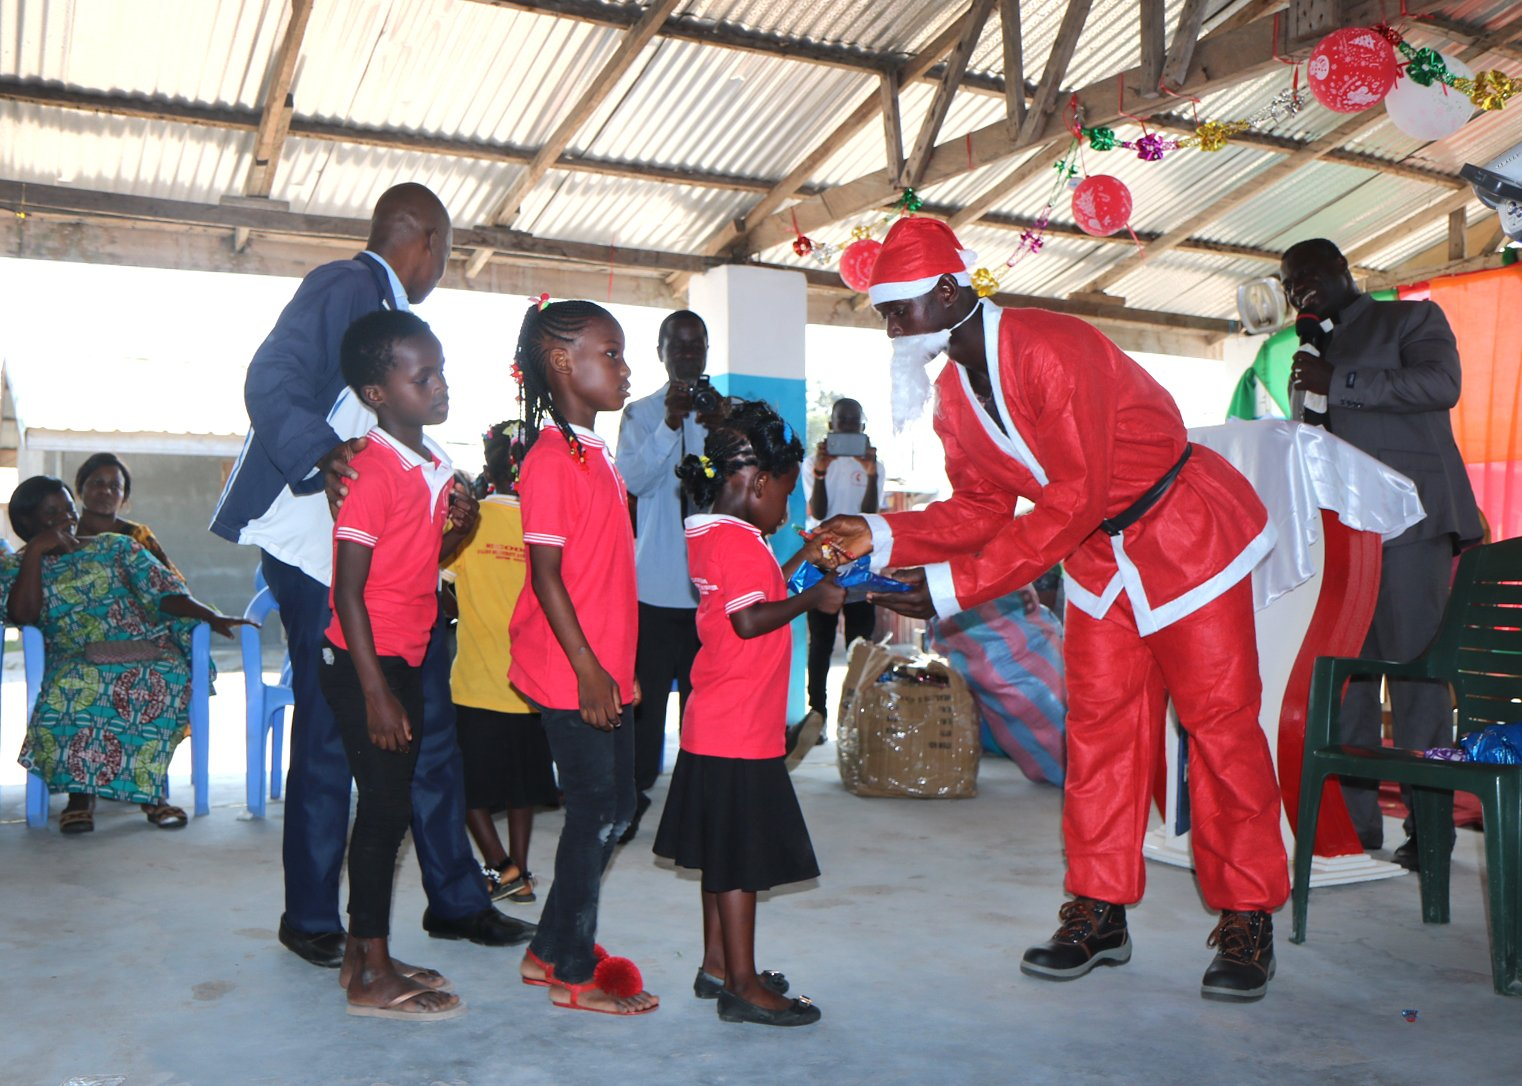 Children line up to receive a gift from Santa at Ampain Ivorian Refugee Camp in southwestern Ghana on Christmas Day. The Aboisso District of The United Methodist Church in Côte d'Ivoire organized the celebration and gifts for more than 540 children. Photo by Isaac Broune, UM News.